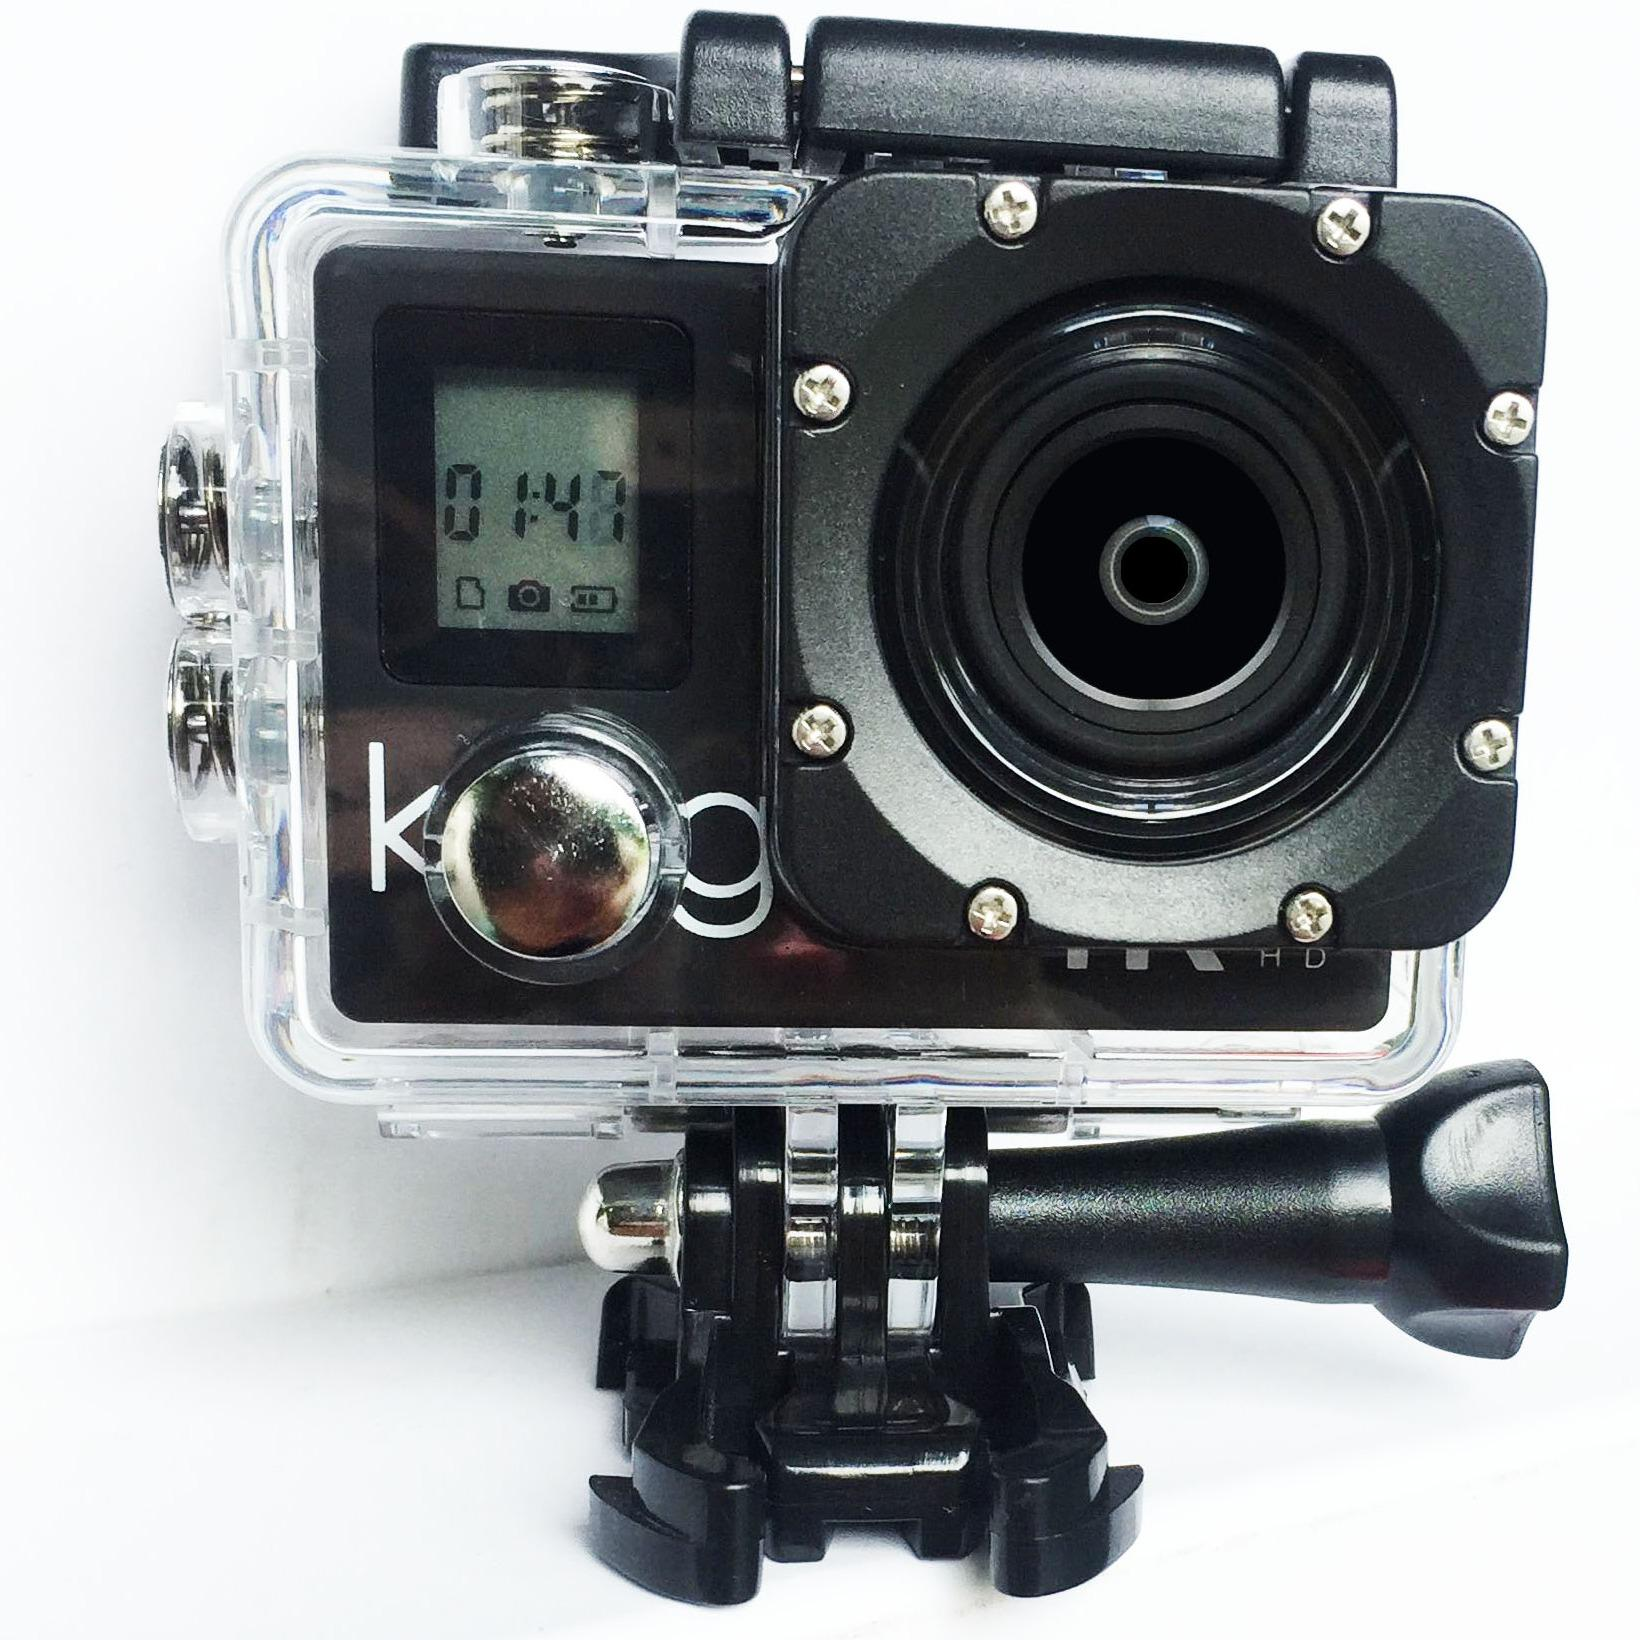 Beli Barang Kogan Action Camera 4K Nv Ultrahd 16Mp Putih Wifi Online